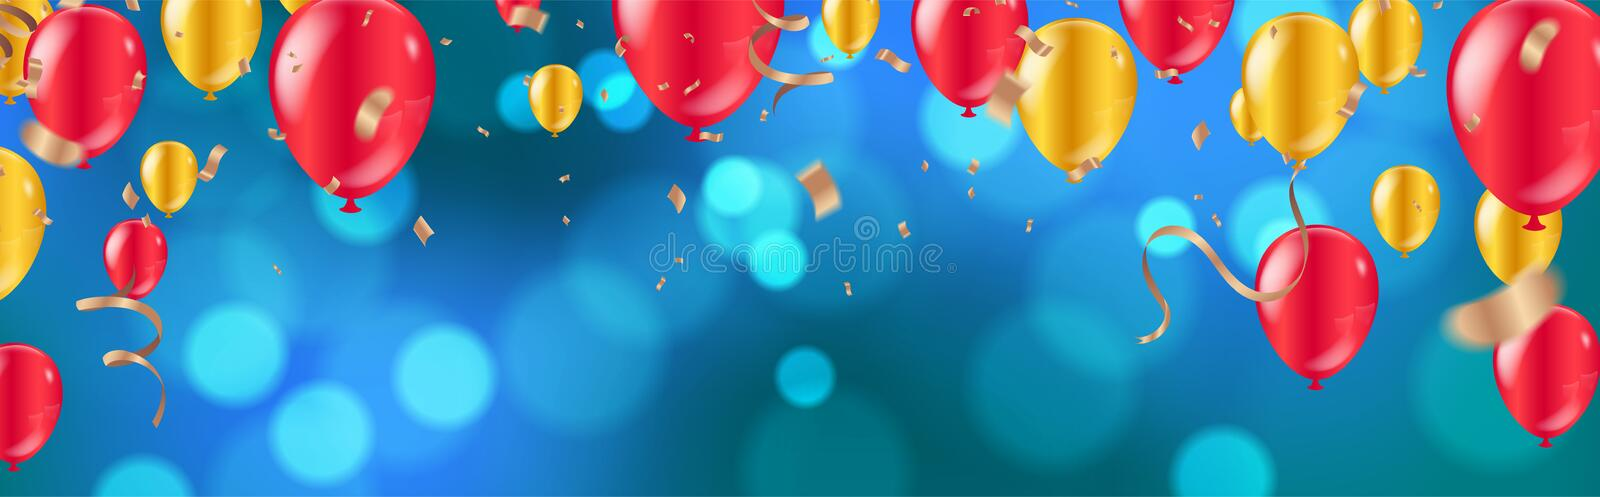 Celebration. glossy golden and red balloons with Dark blue holiday background with colorful shining bokeh and serpentine royalty free illustration